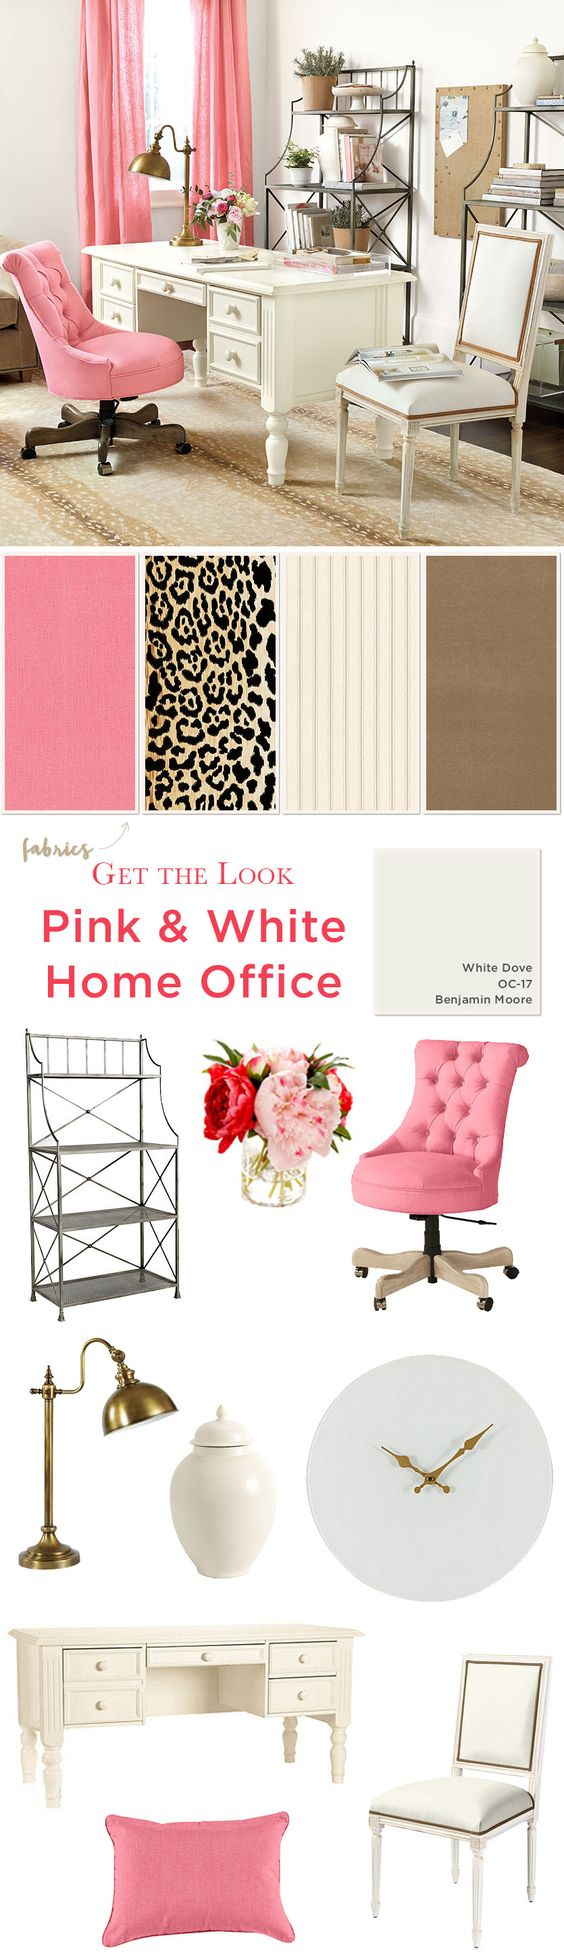 Get the look of this girly, home office